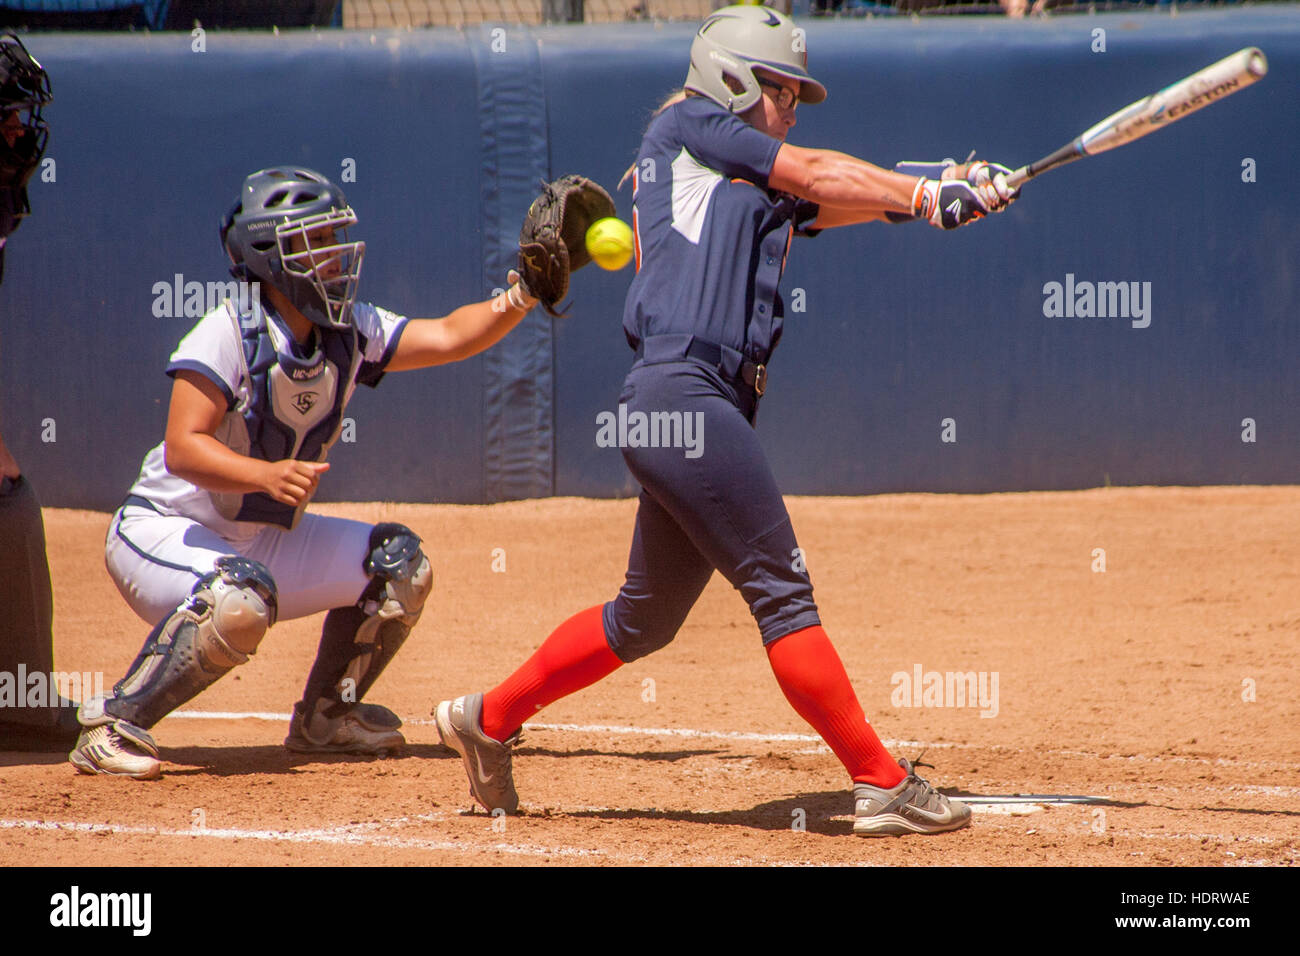 Up at bat, a college woman softball player swings at the ball and misses at a game on the field in Fullerton, CA. - Stock Image